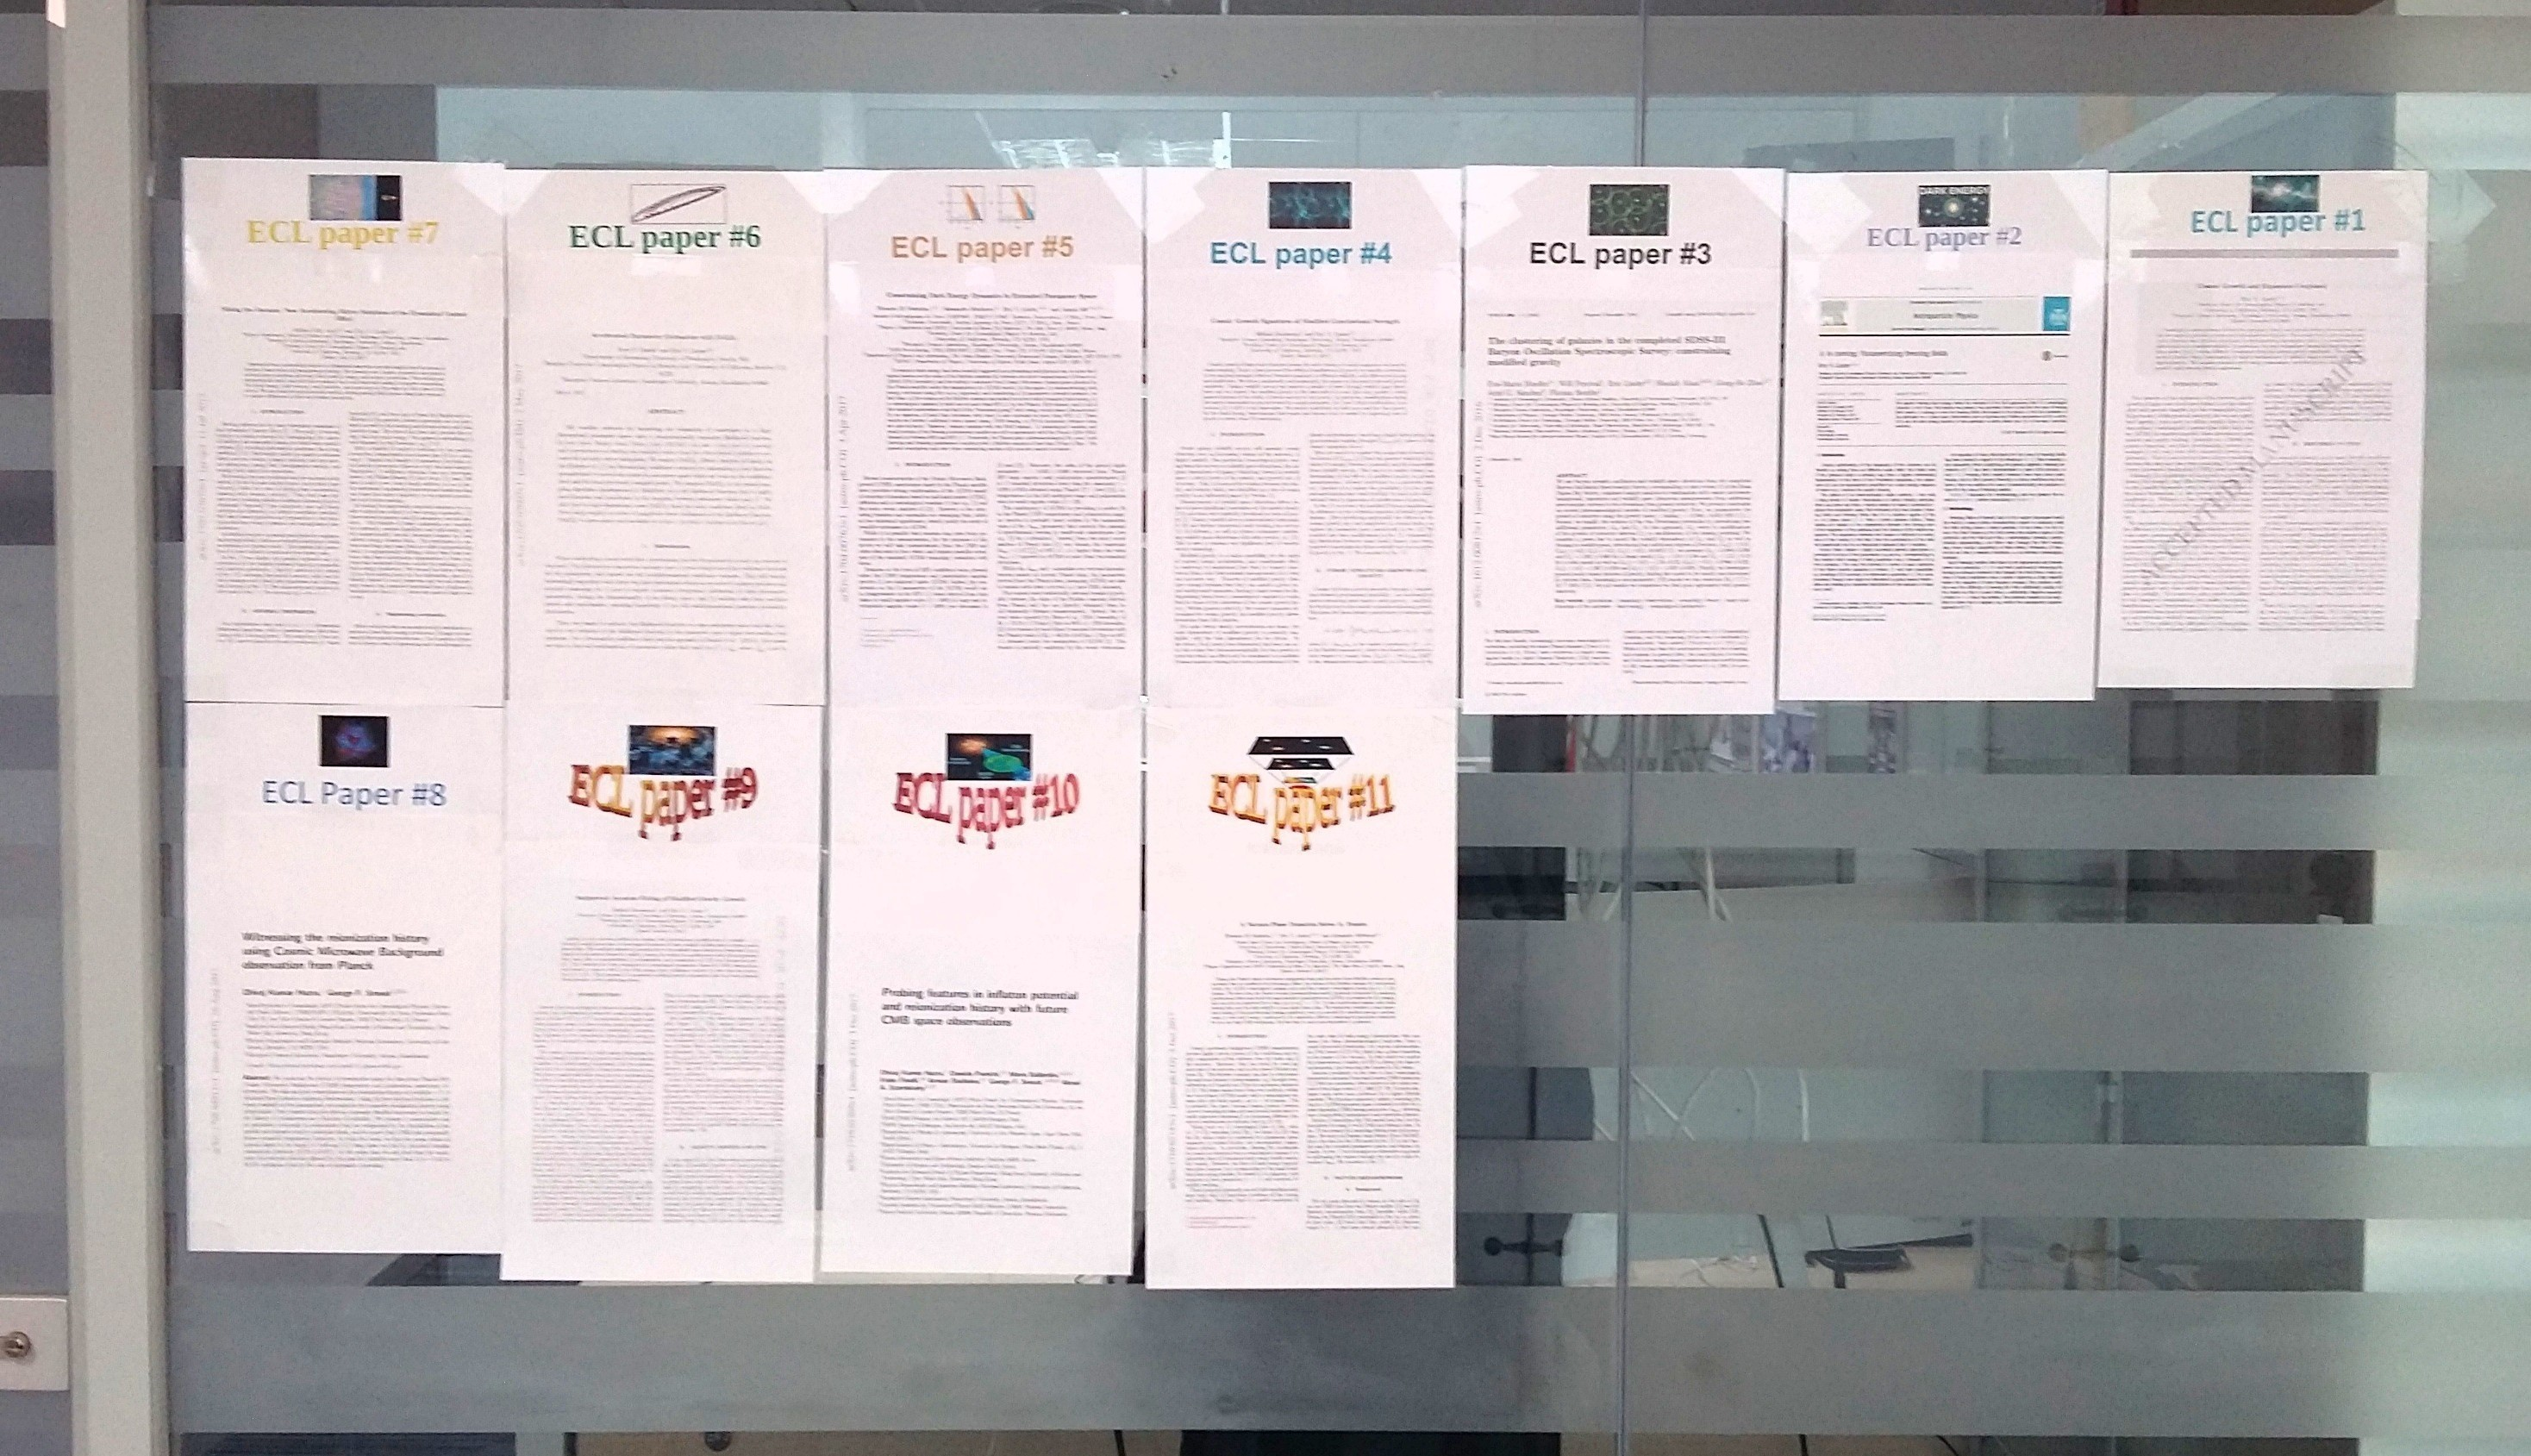 2017 ECL published papers wall